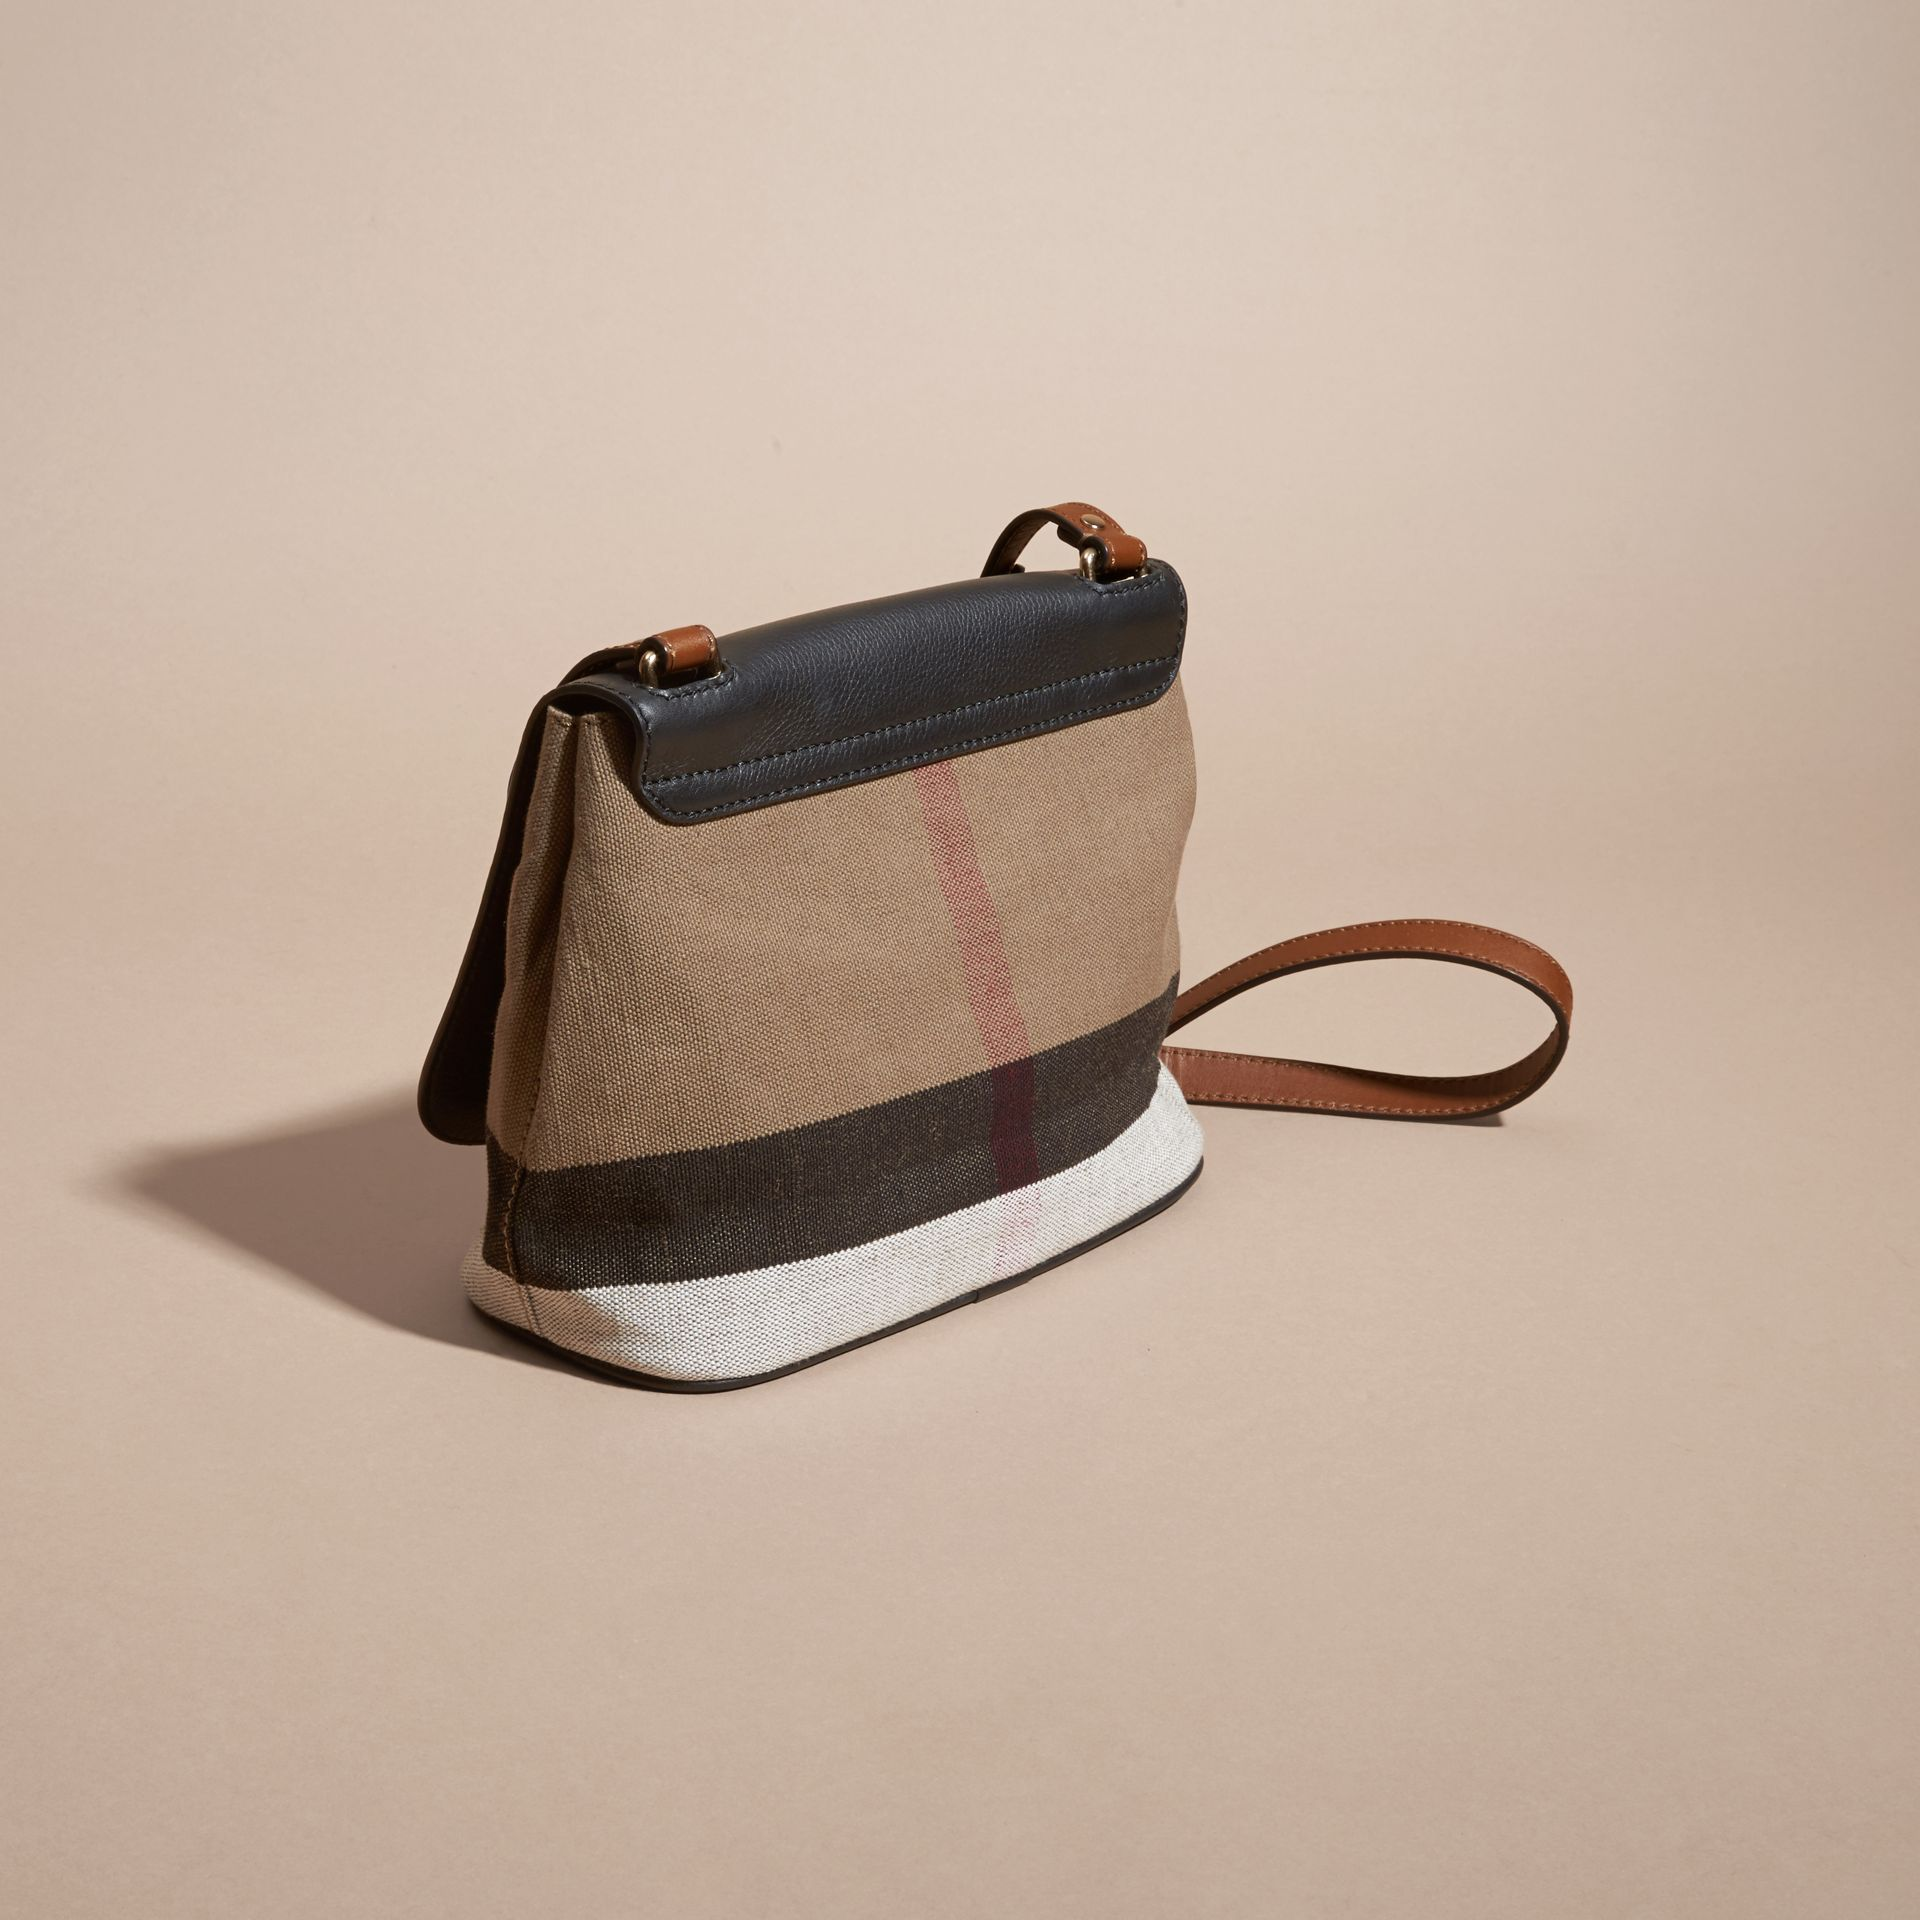 Black Canvas Check and Leather Crossbody Bag Black - gallery image 4